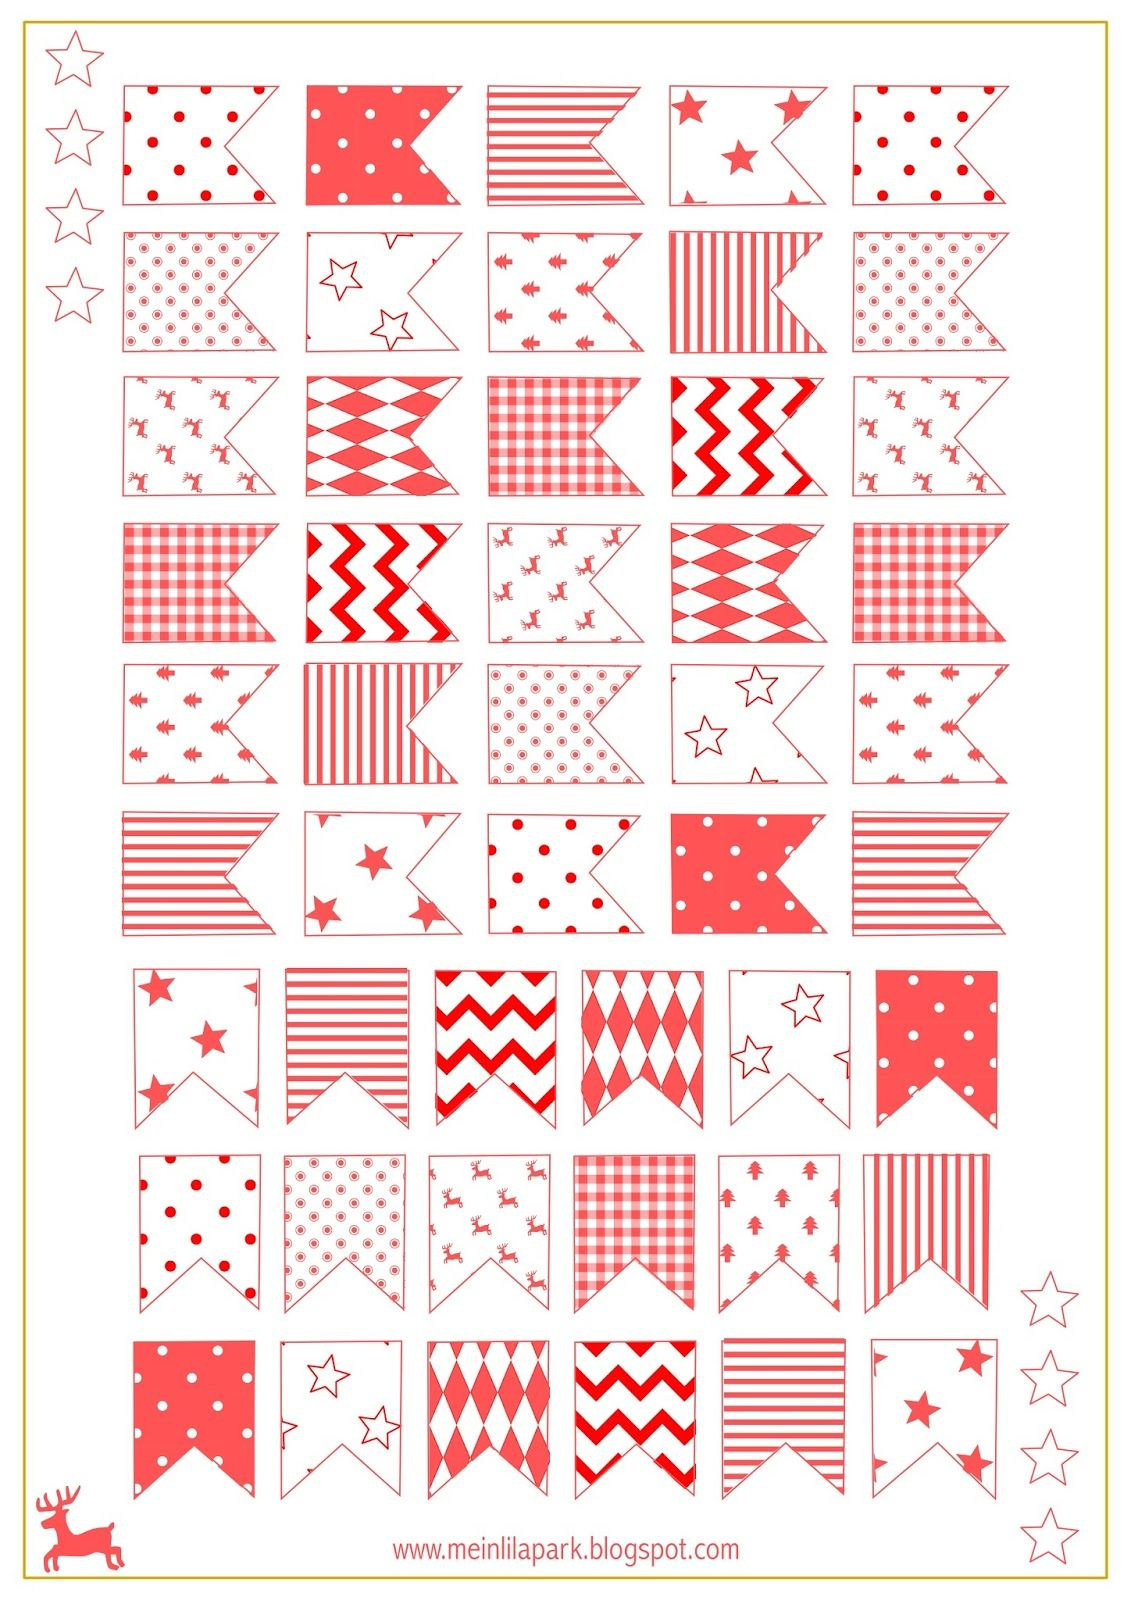 graphic about Printable Freebie titled Absolutely free printable Xmas flags - ausdruckbare Sticker